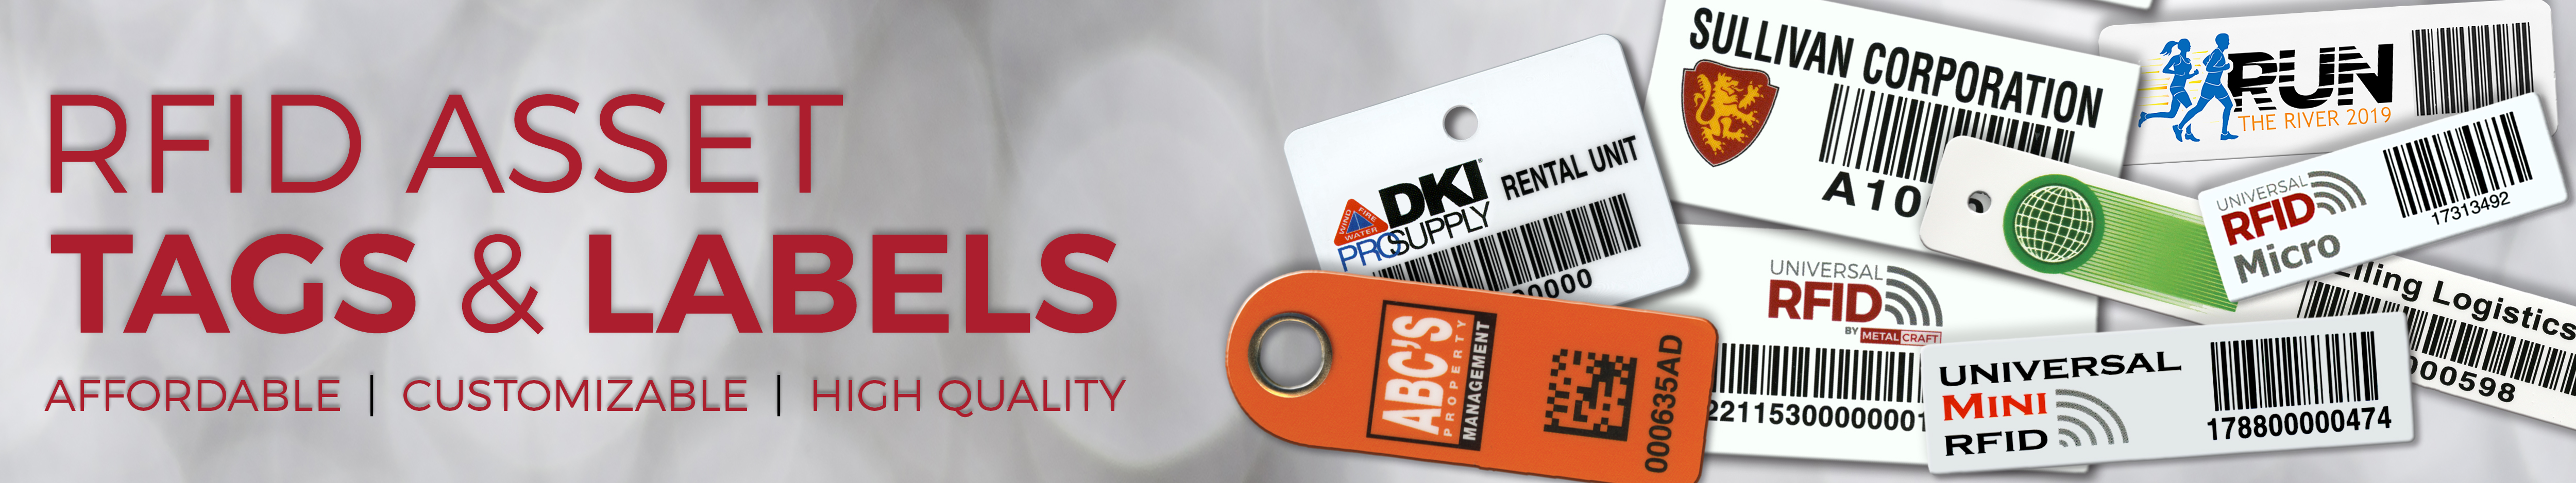 RFID Asset Tags & Labels